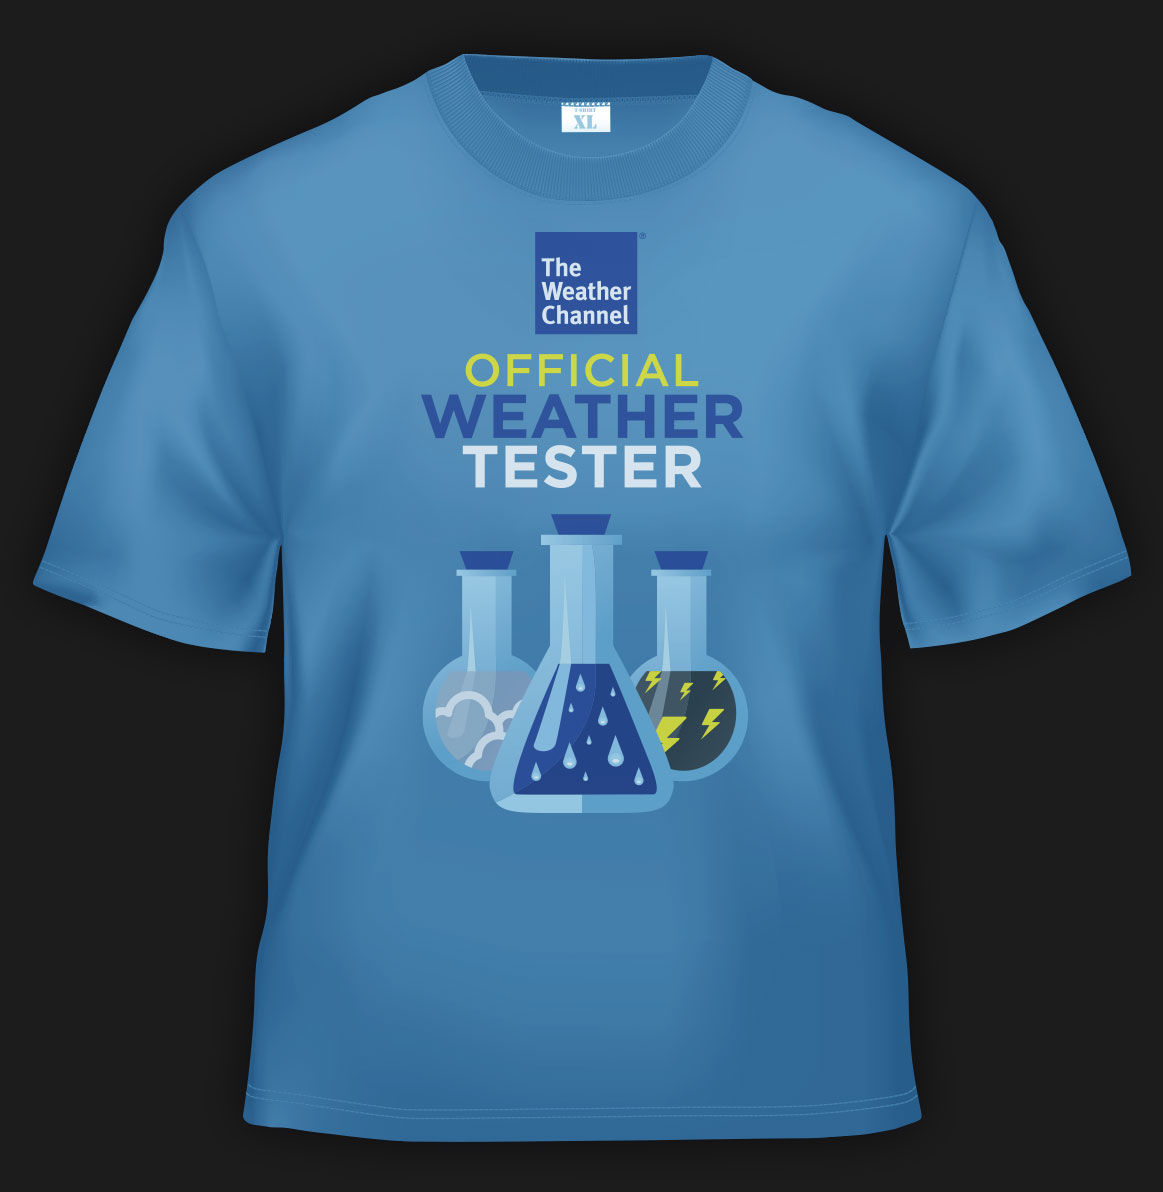 T-shirt created for The Weather Channel product testers